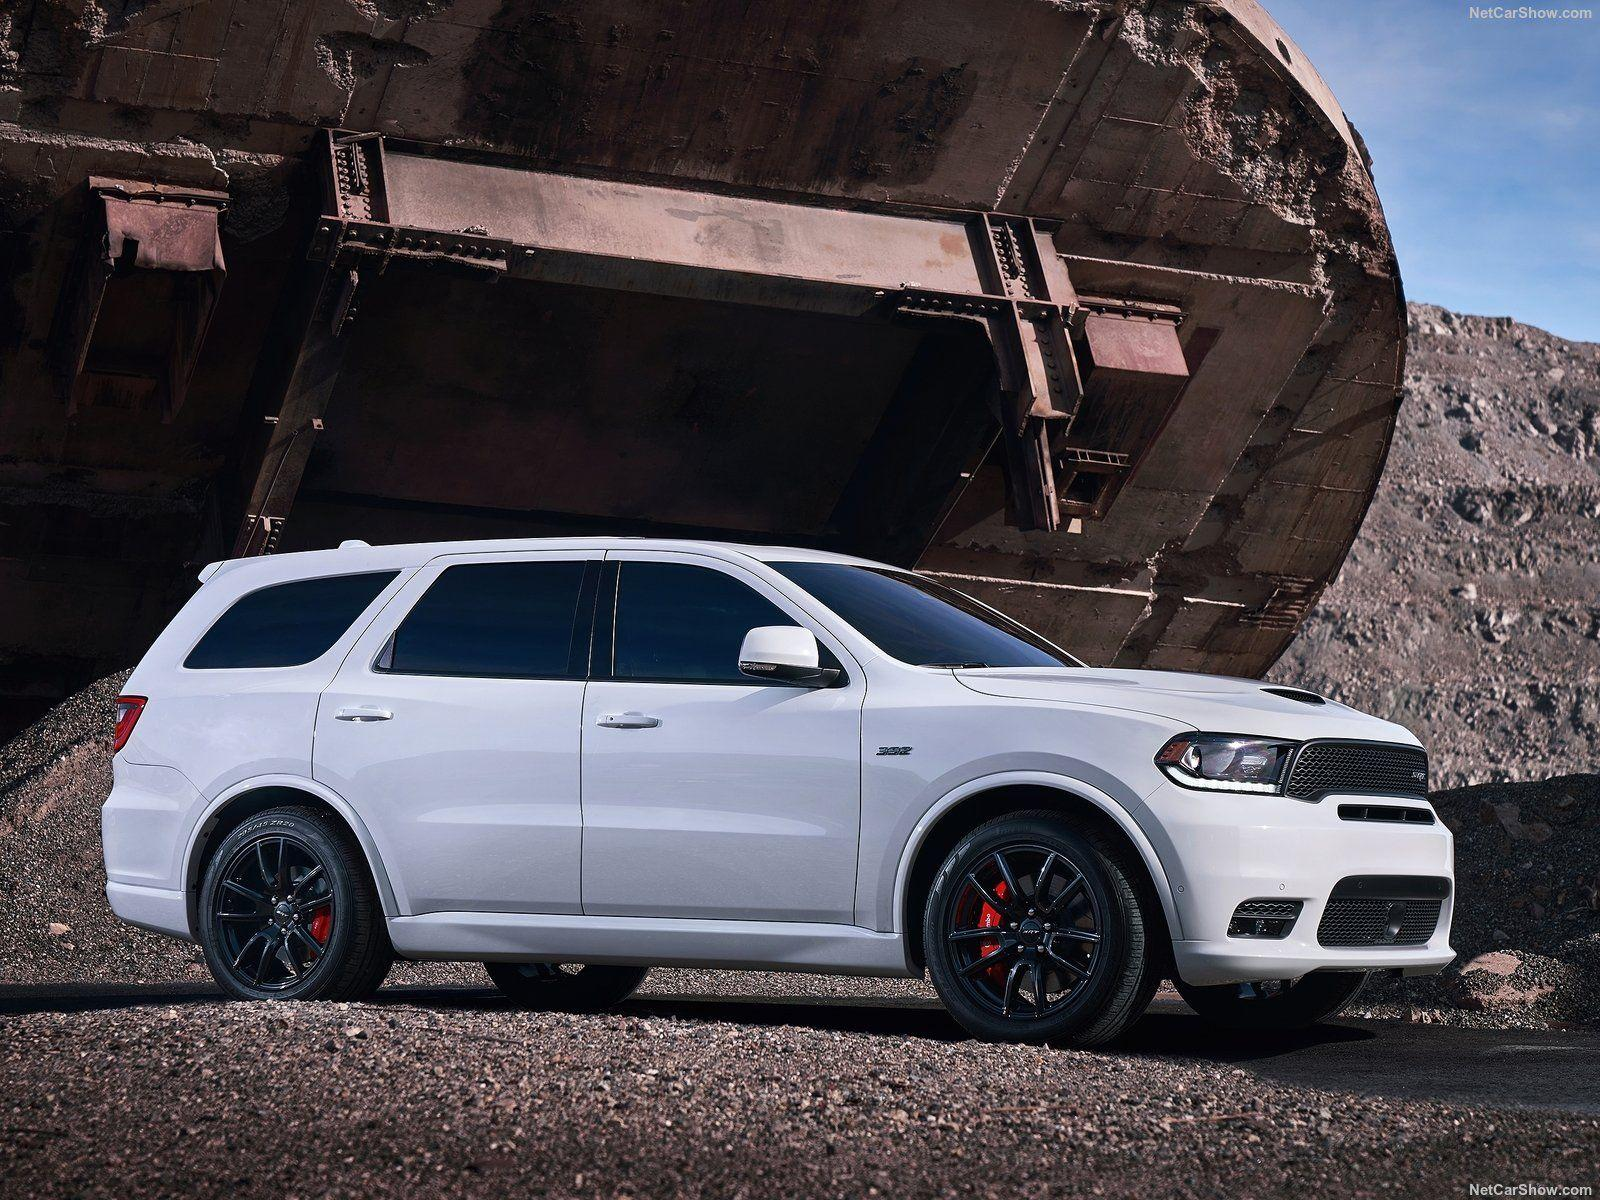 Dodge Durango Srt Wallpapers Wallpaper Cave